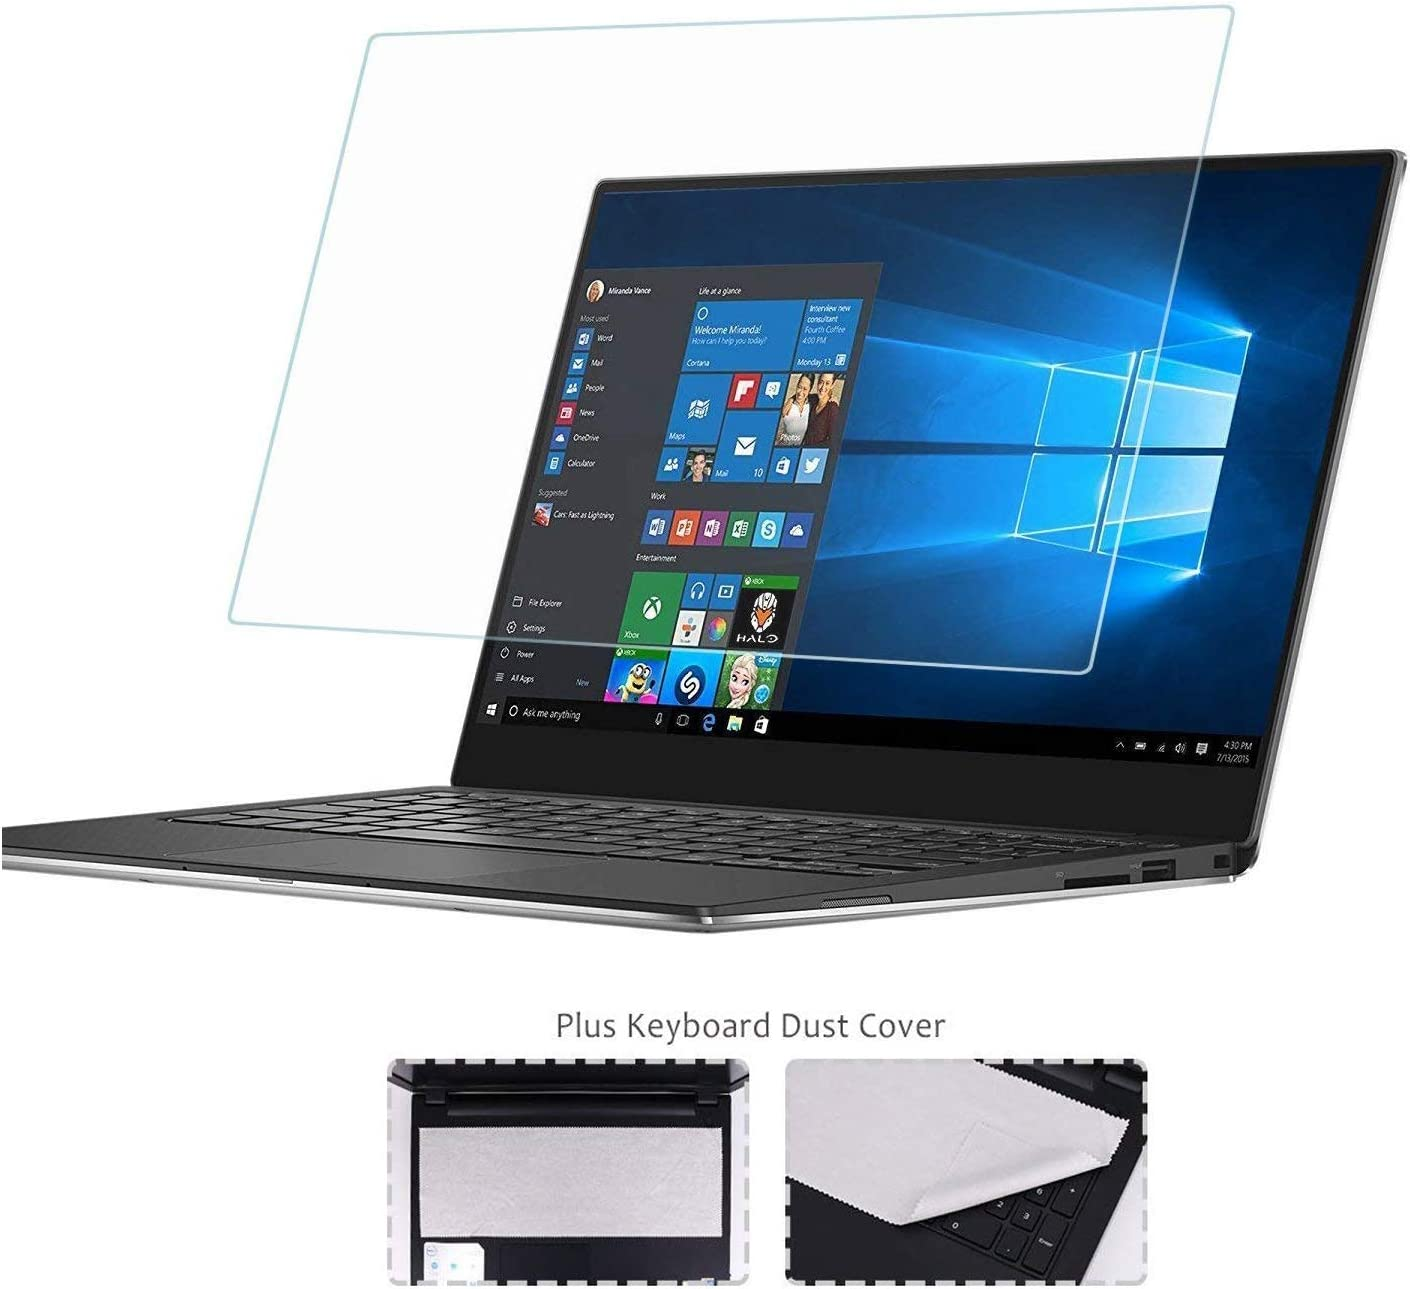 "14"" Glass Screen Protector+ Large Cleaning Cloth Compatible with All Brands of 16:9 Aspect Ratio Laptop [Lifetime Risk-Free Replacement Warranty]"